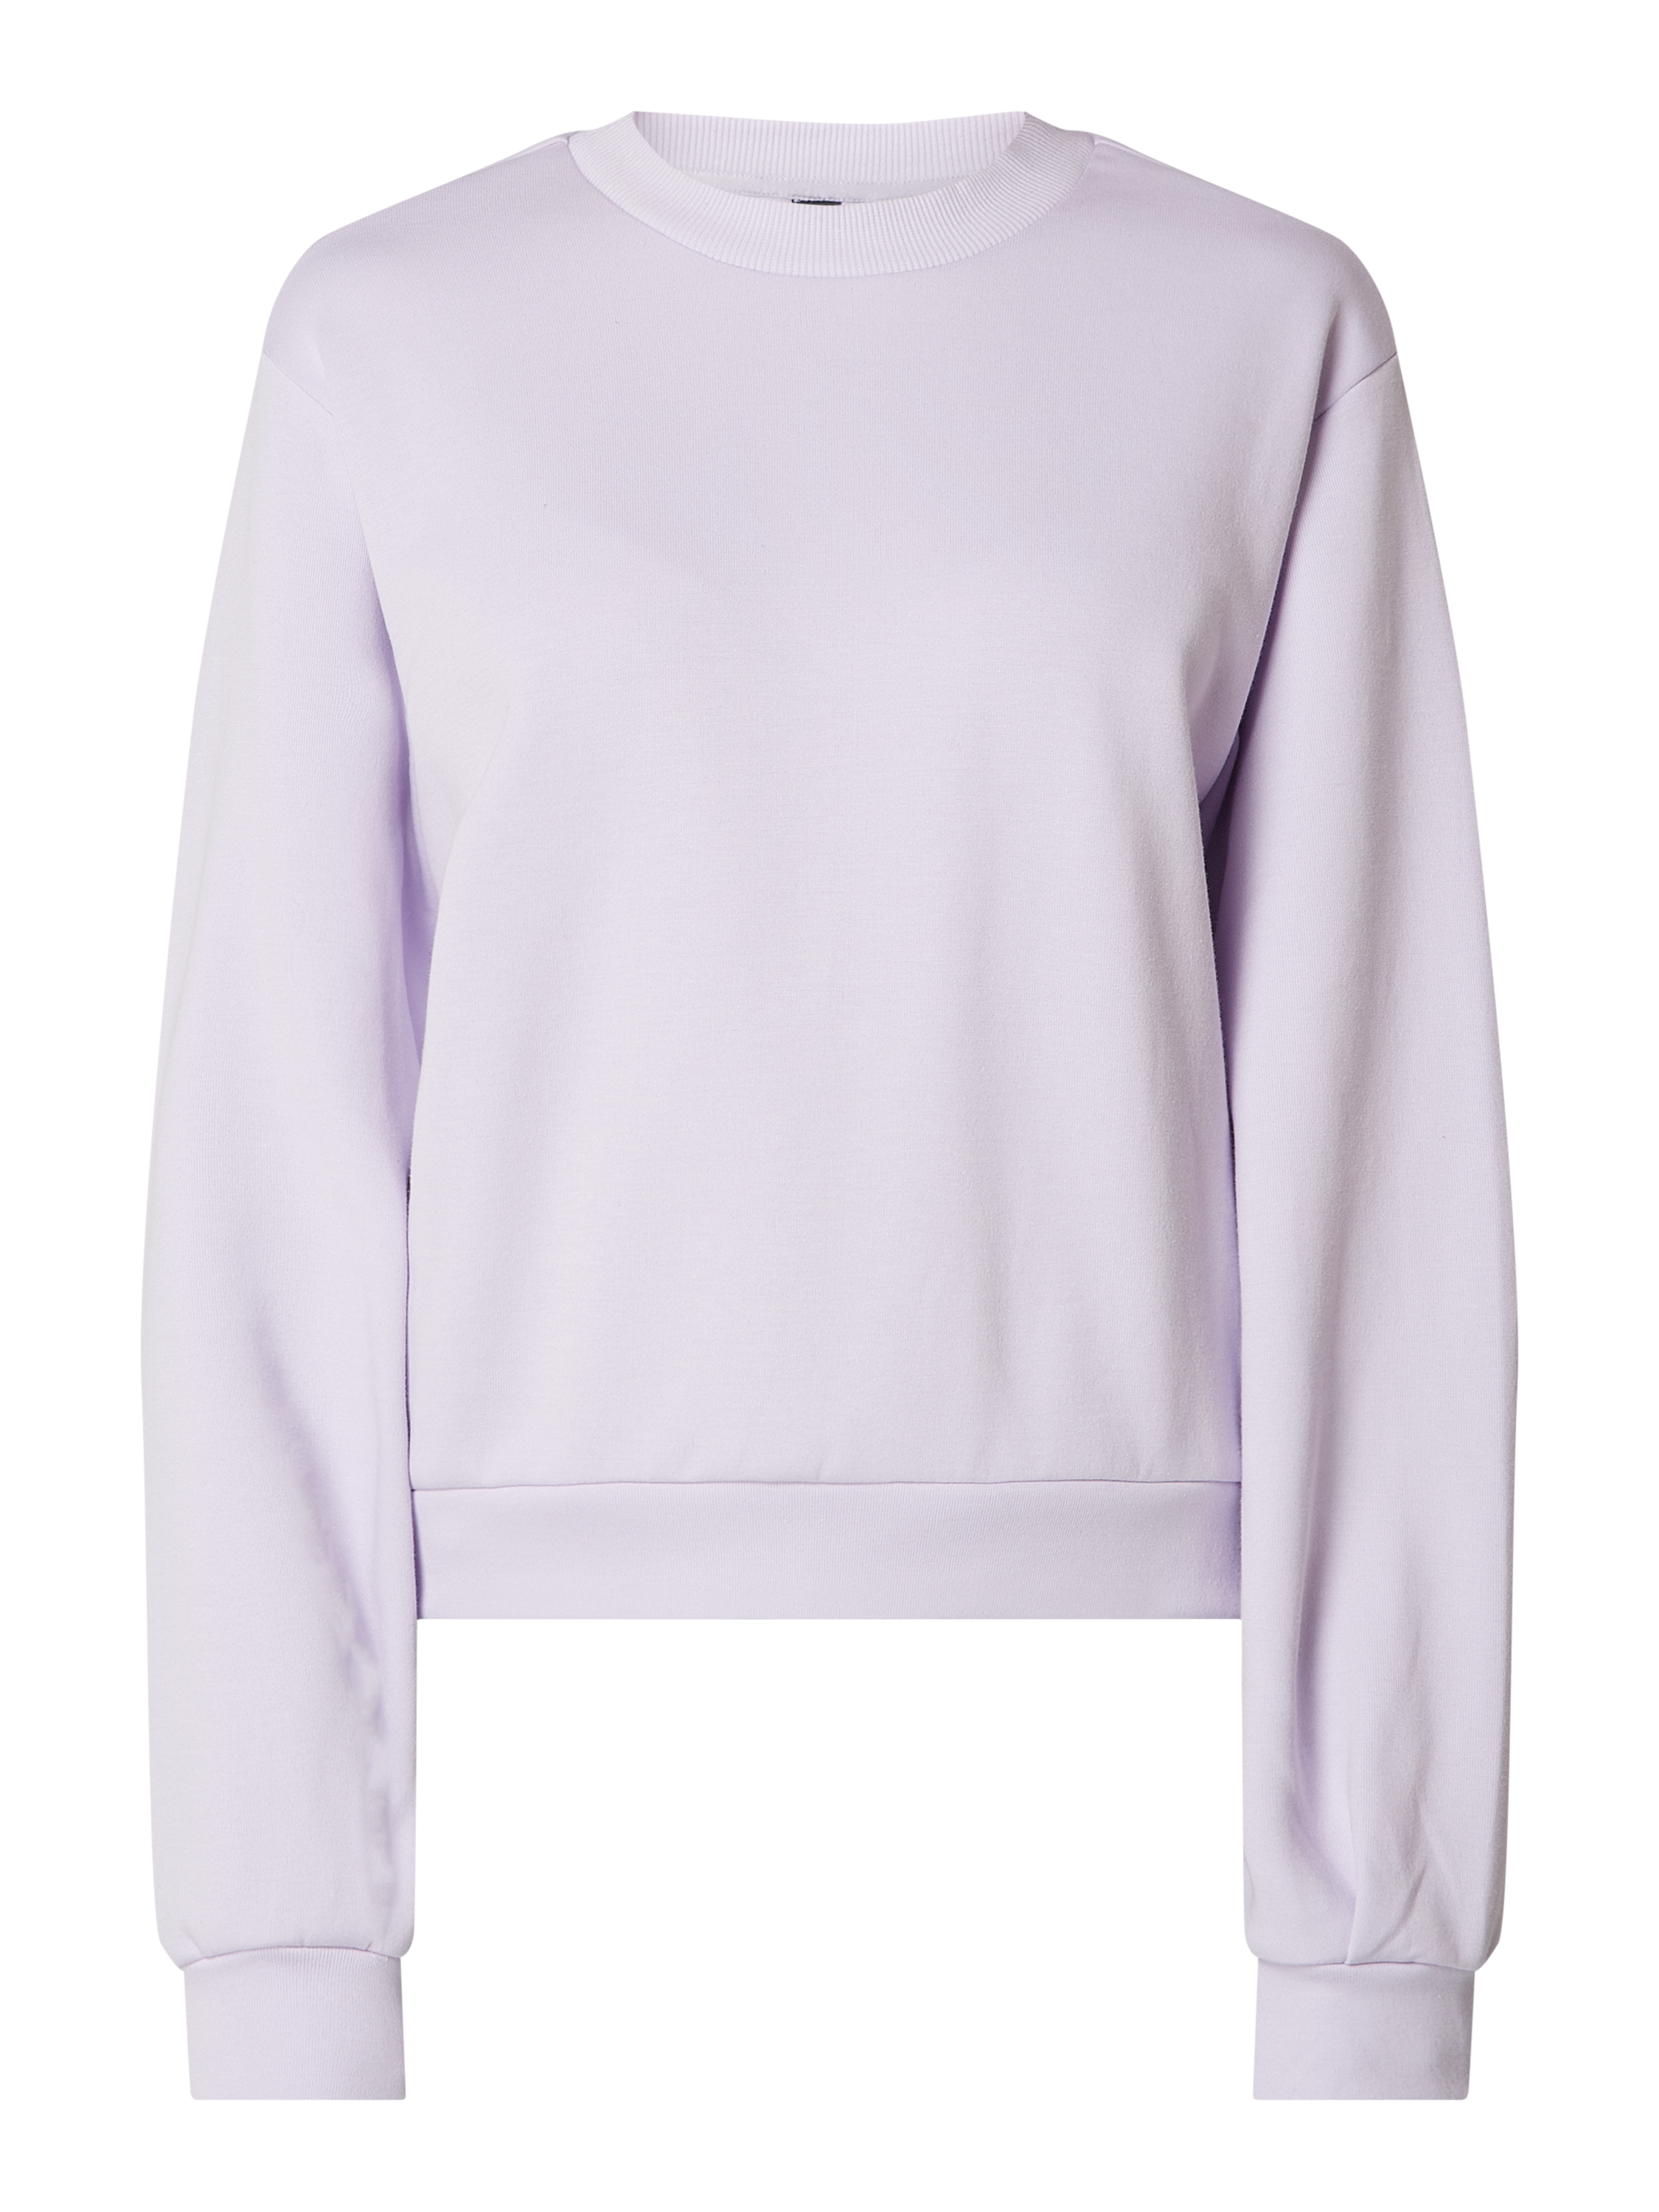 ADIDAS PERFORMANCE Sweatshirt mit Mesheinsatz in Lila online